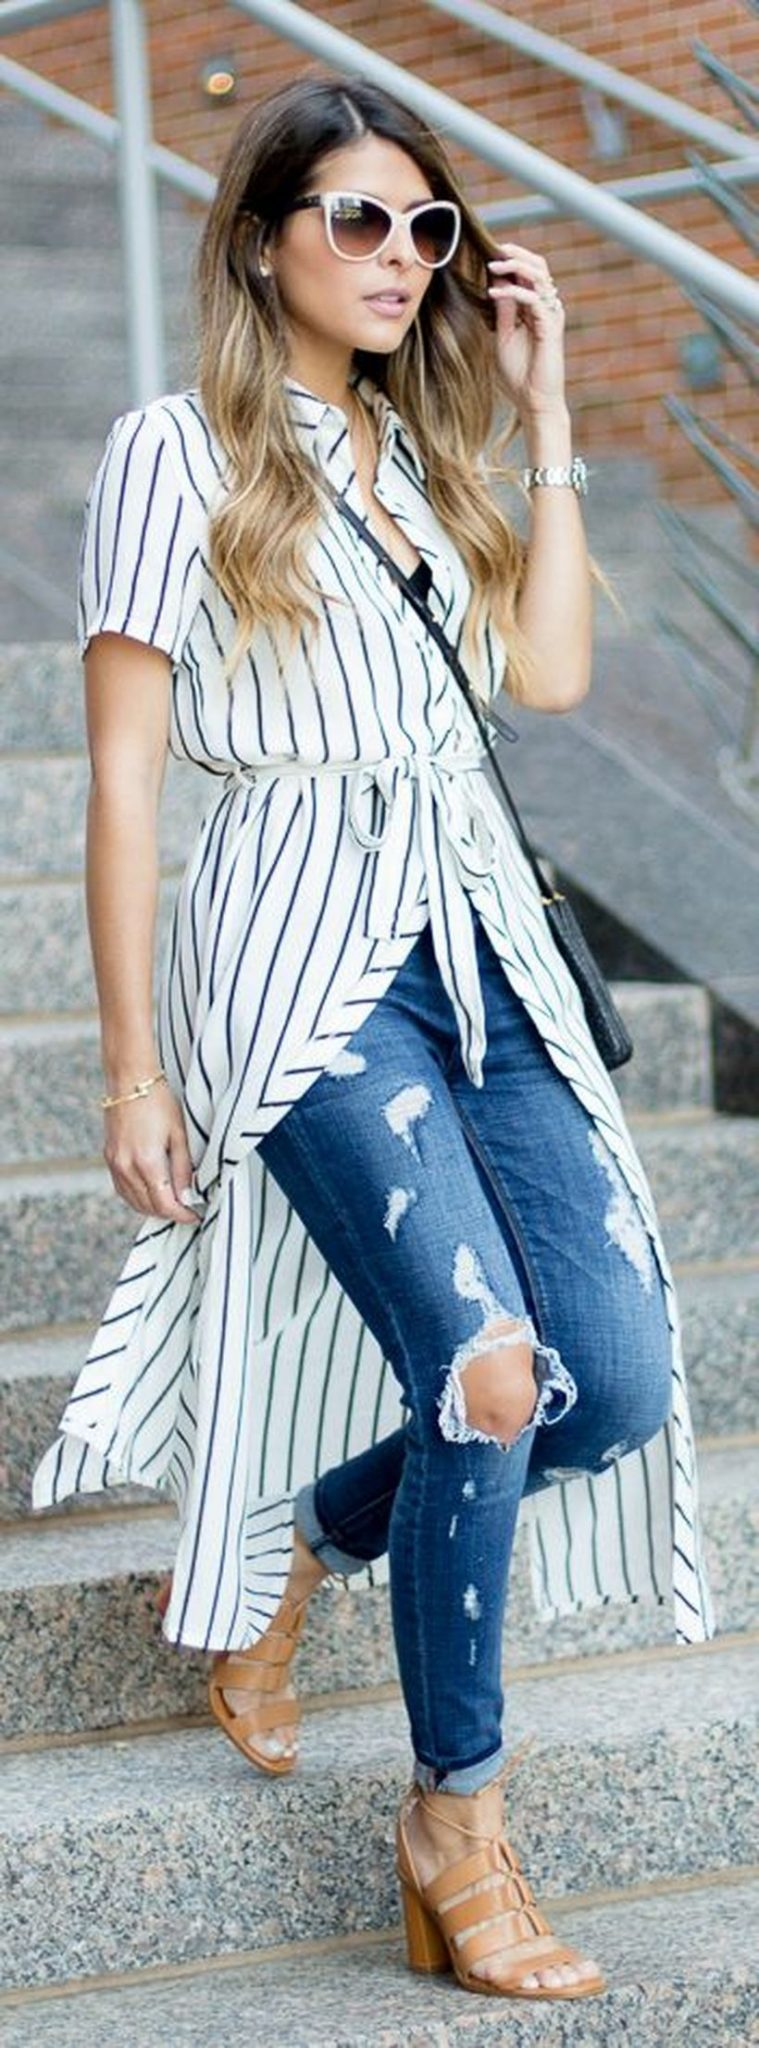 Marvelous striped shirtdresses outfits ideas 49